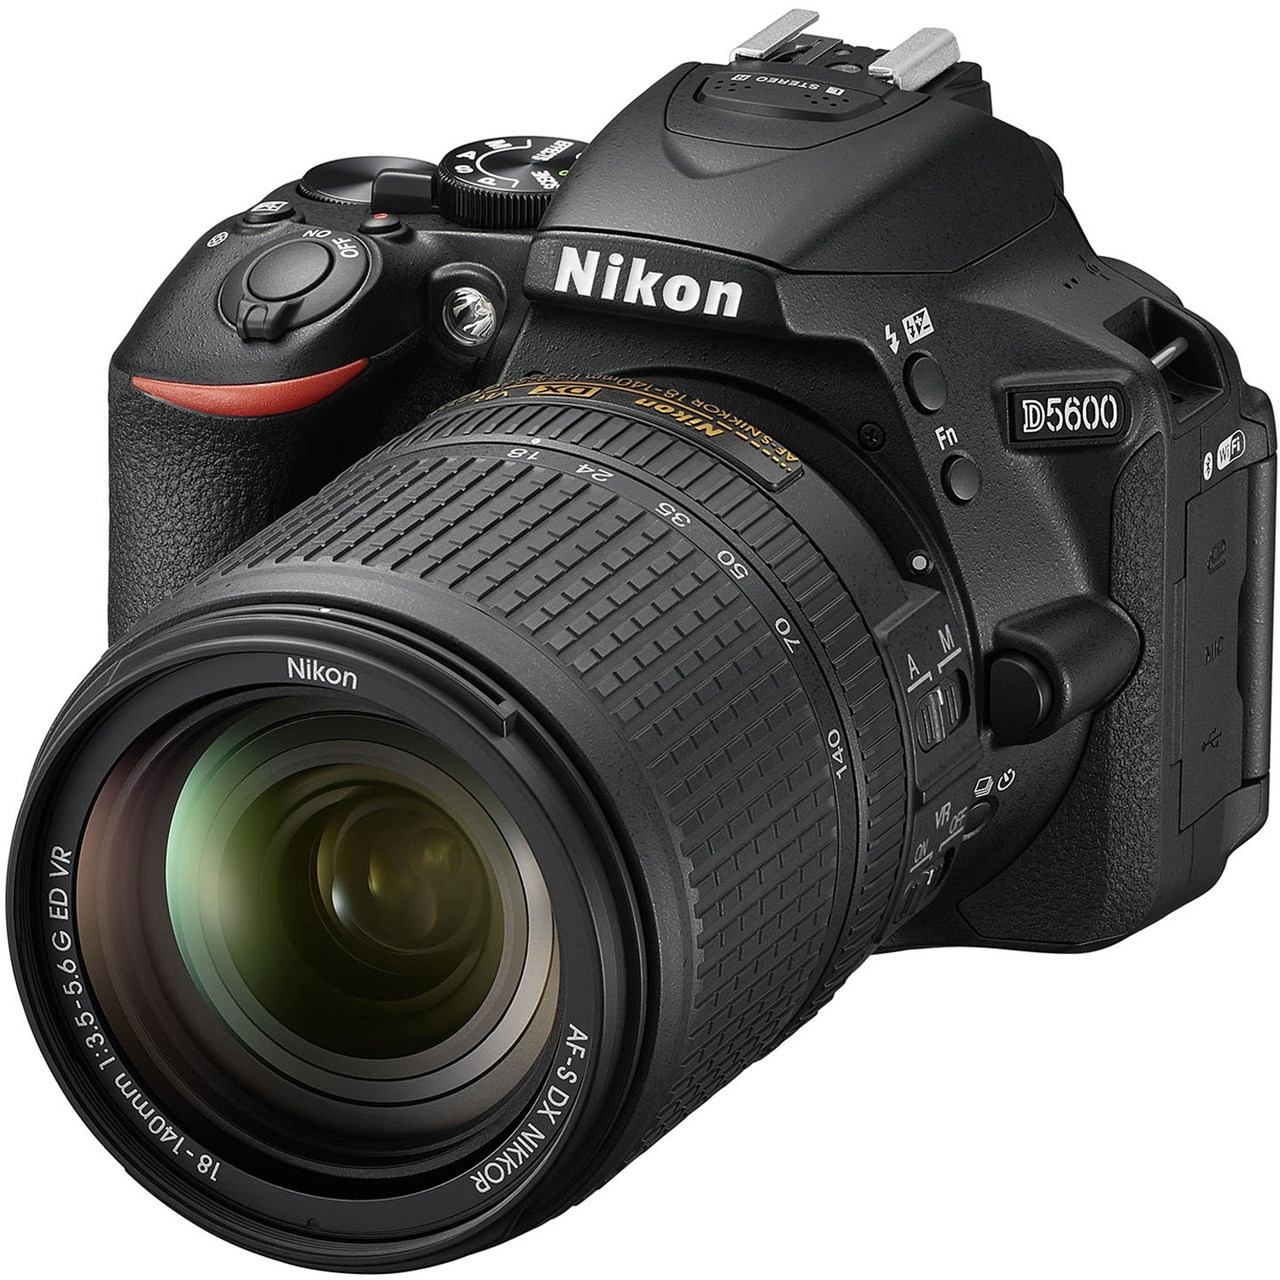 دوربین دیجیتال نیکون مدل Nikon D5600 Digital Camera With 18-140mm VR AF-S DX Lens